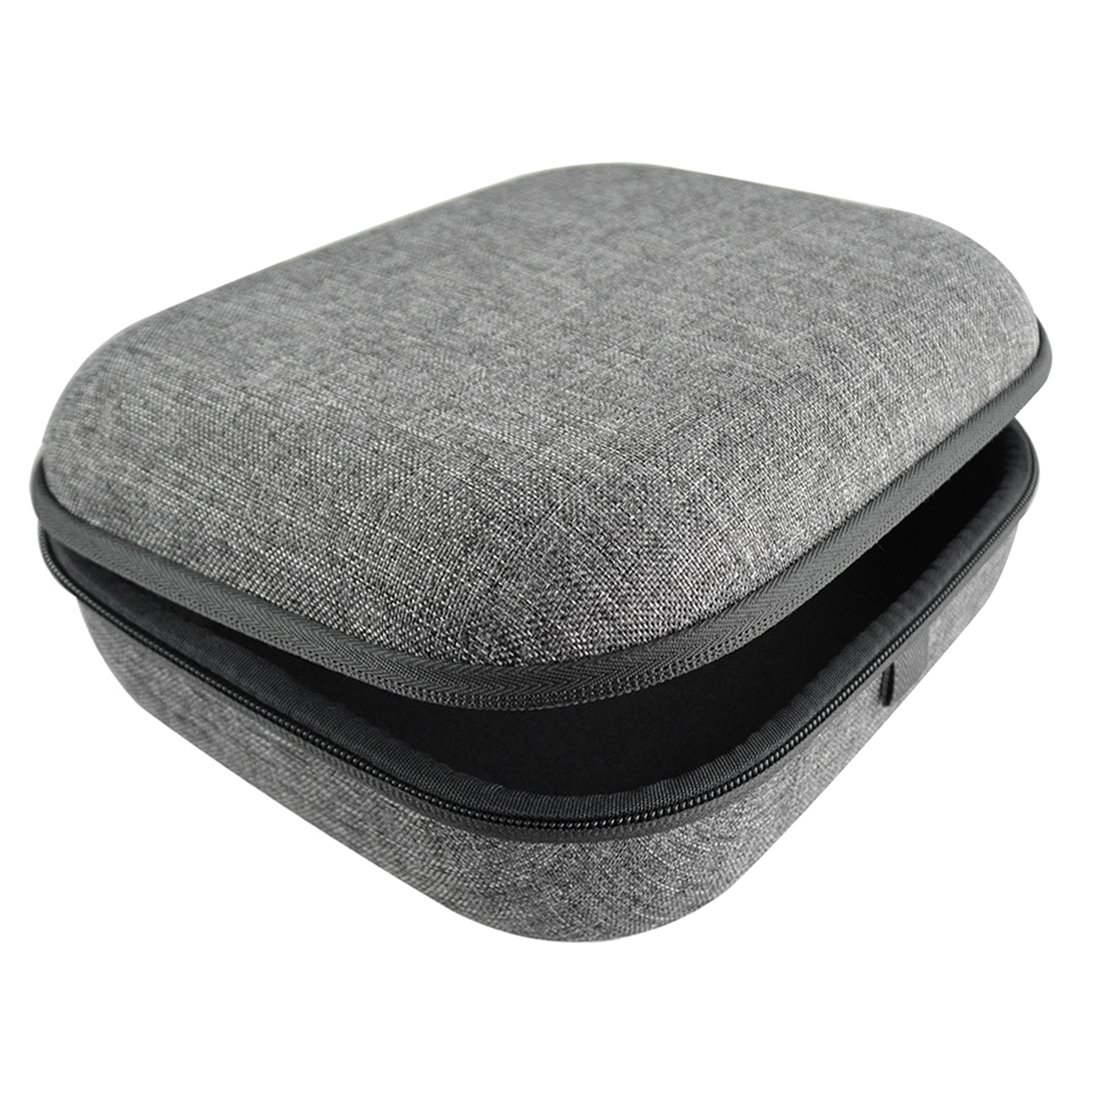 aaeee661aa0 Galleon - Headphones Case For Sennheiser HD598SE